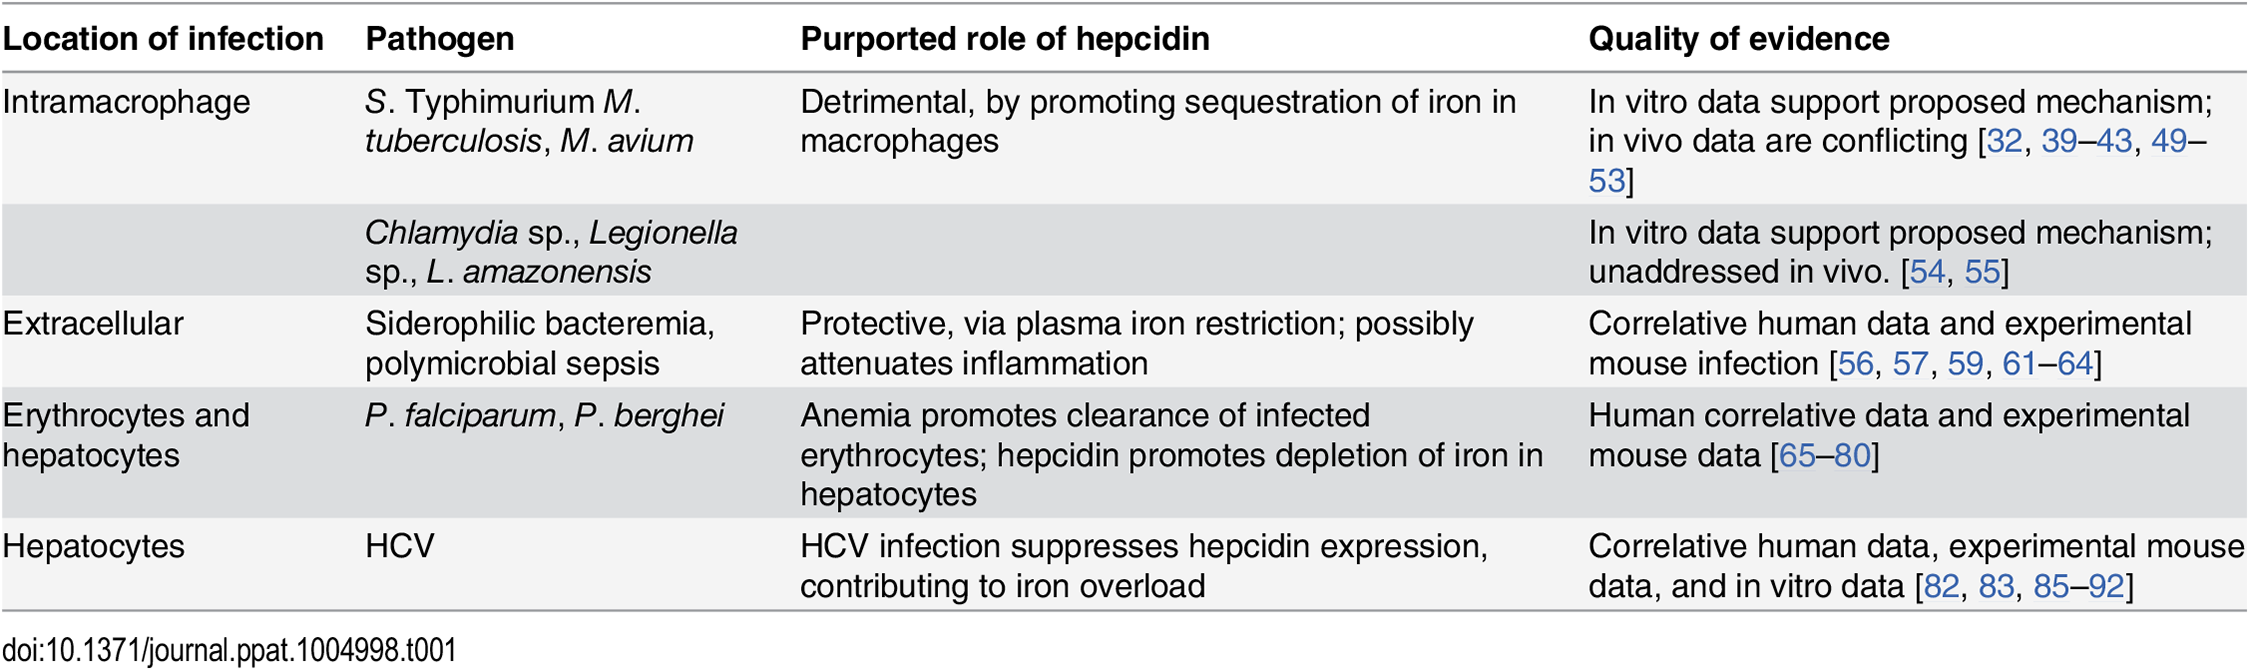 Summary of the role of hepcidin in specific infections.